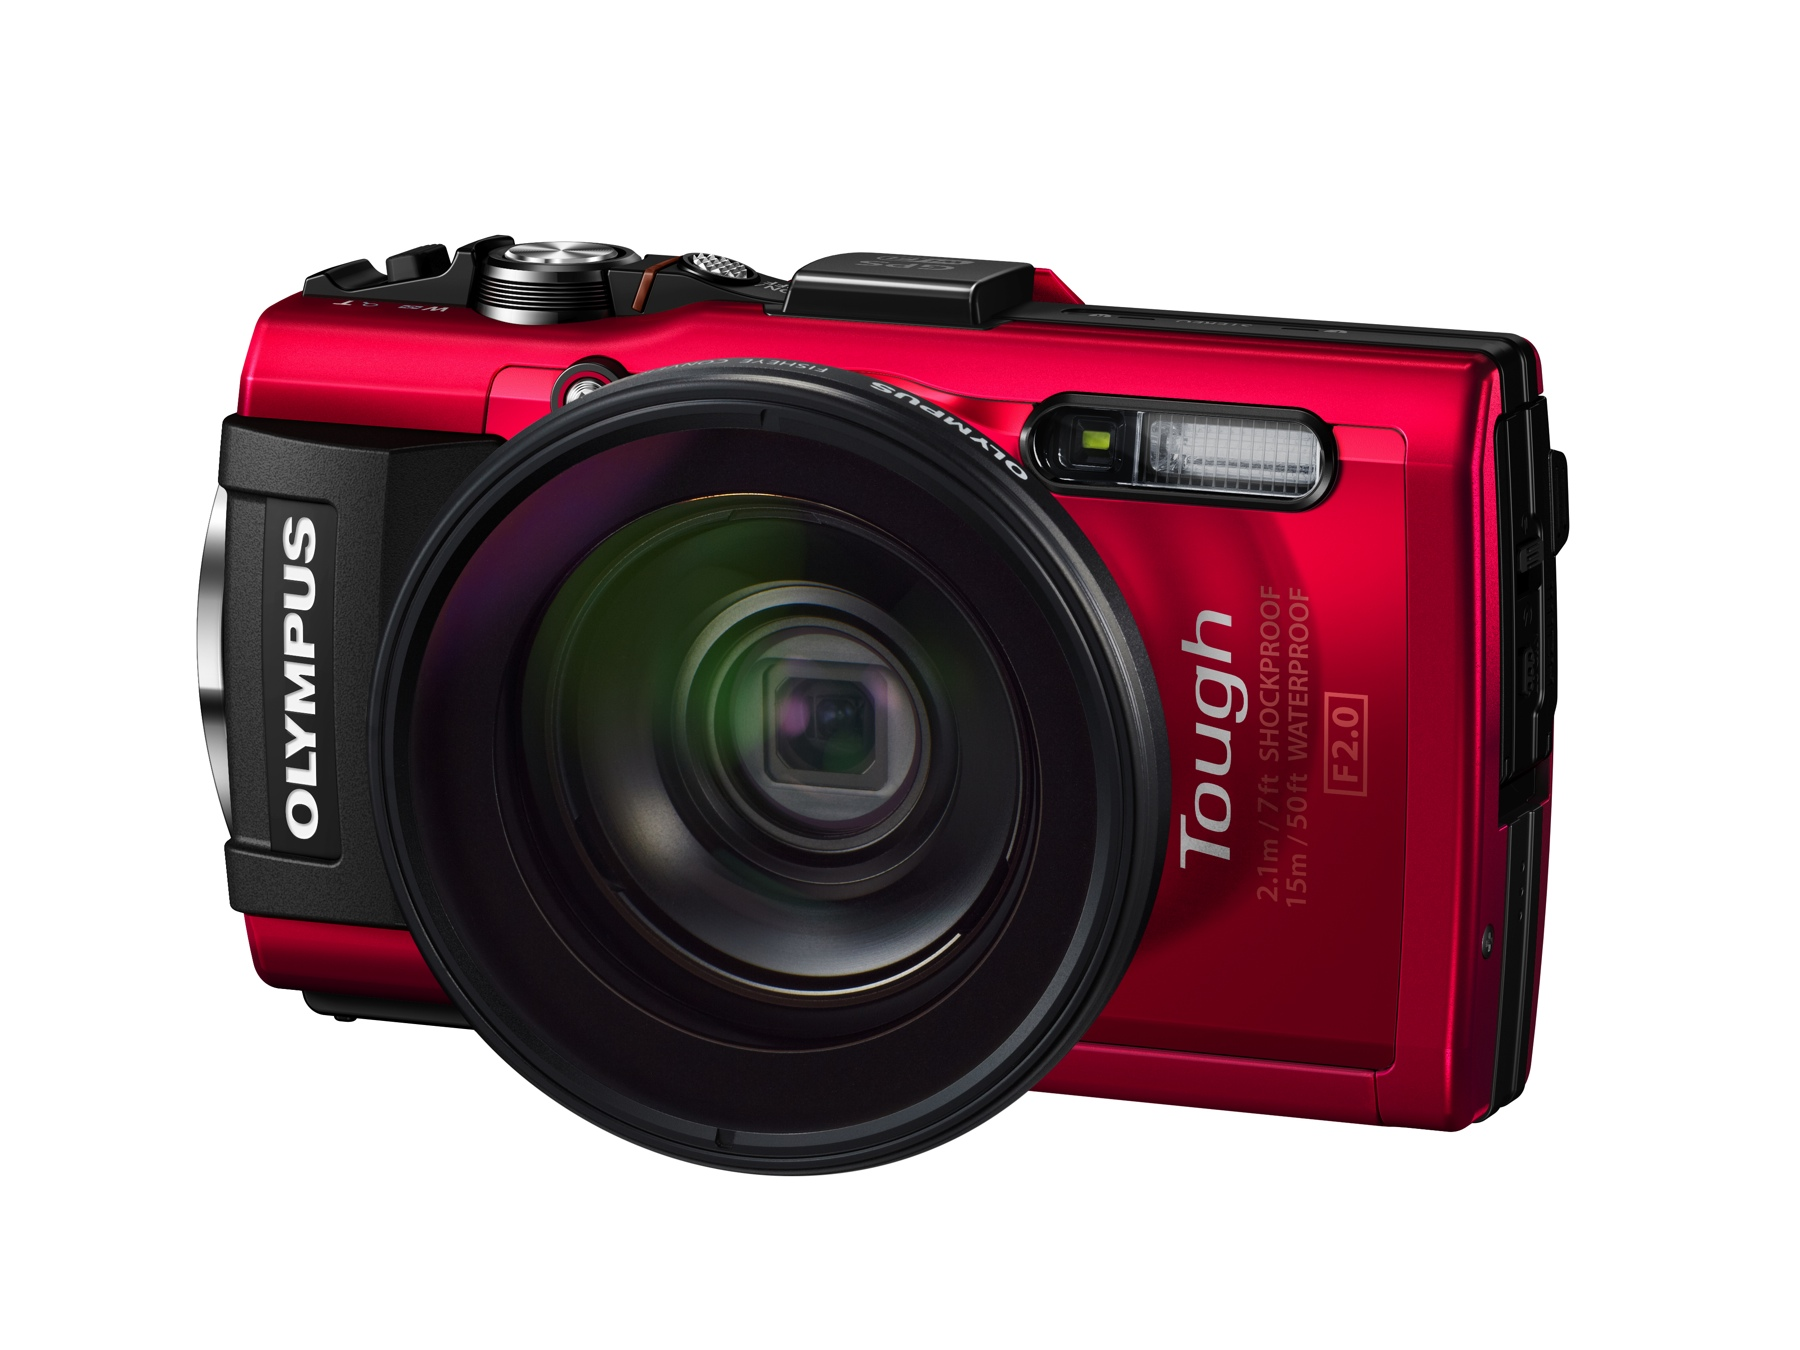 olympus-tg3-tough-camera-9